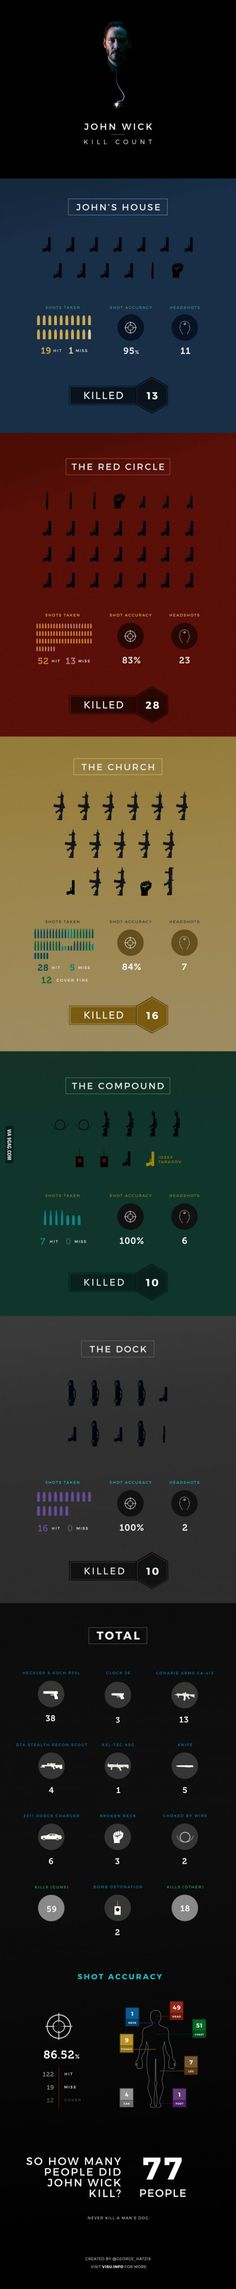 This infographic explains it all - How many people did John Wick kill in the movie?